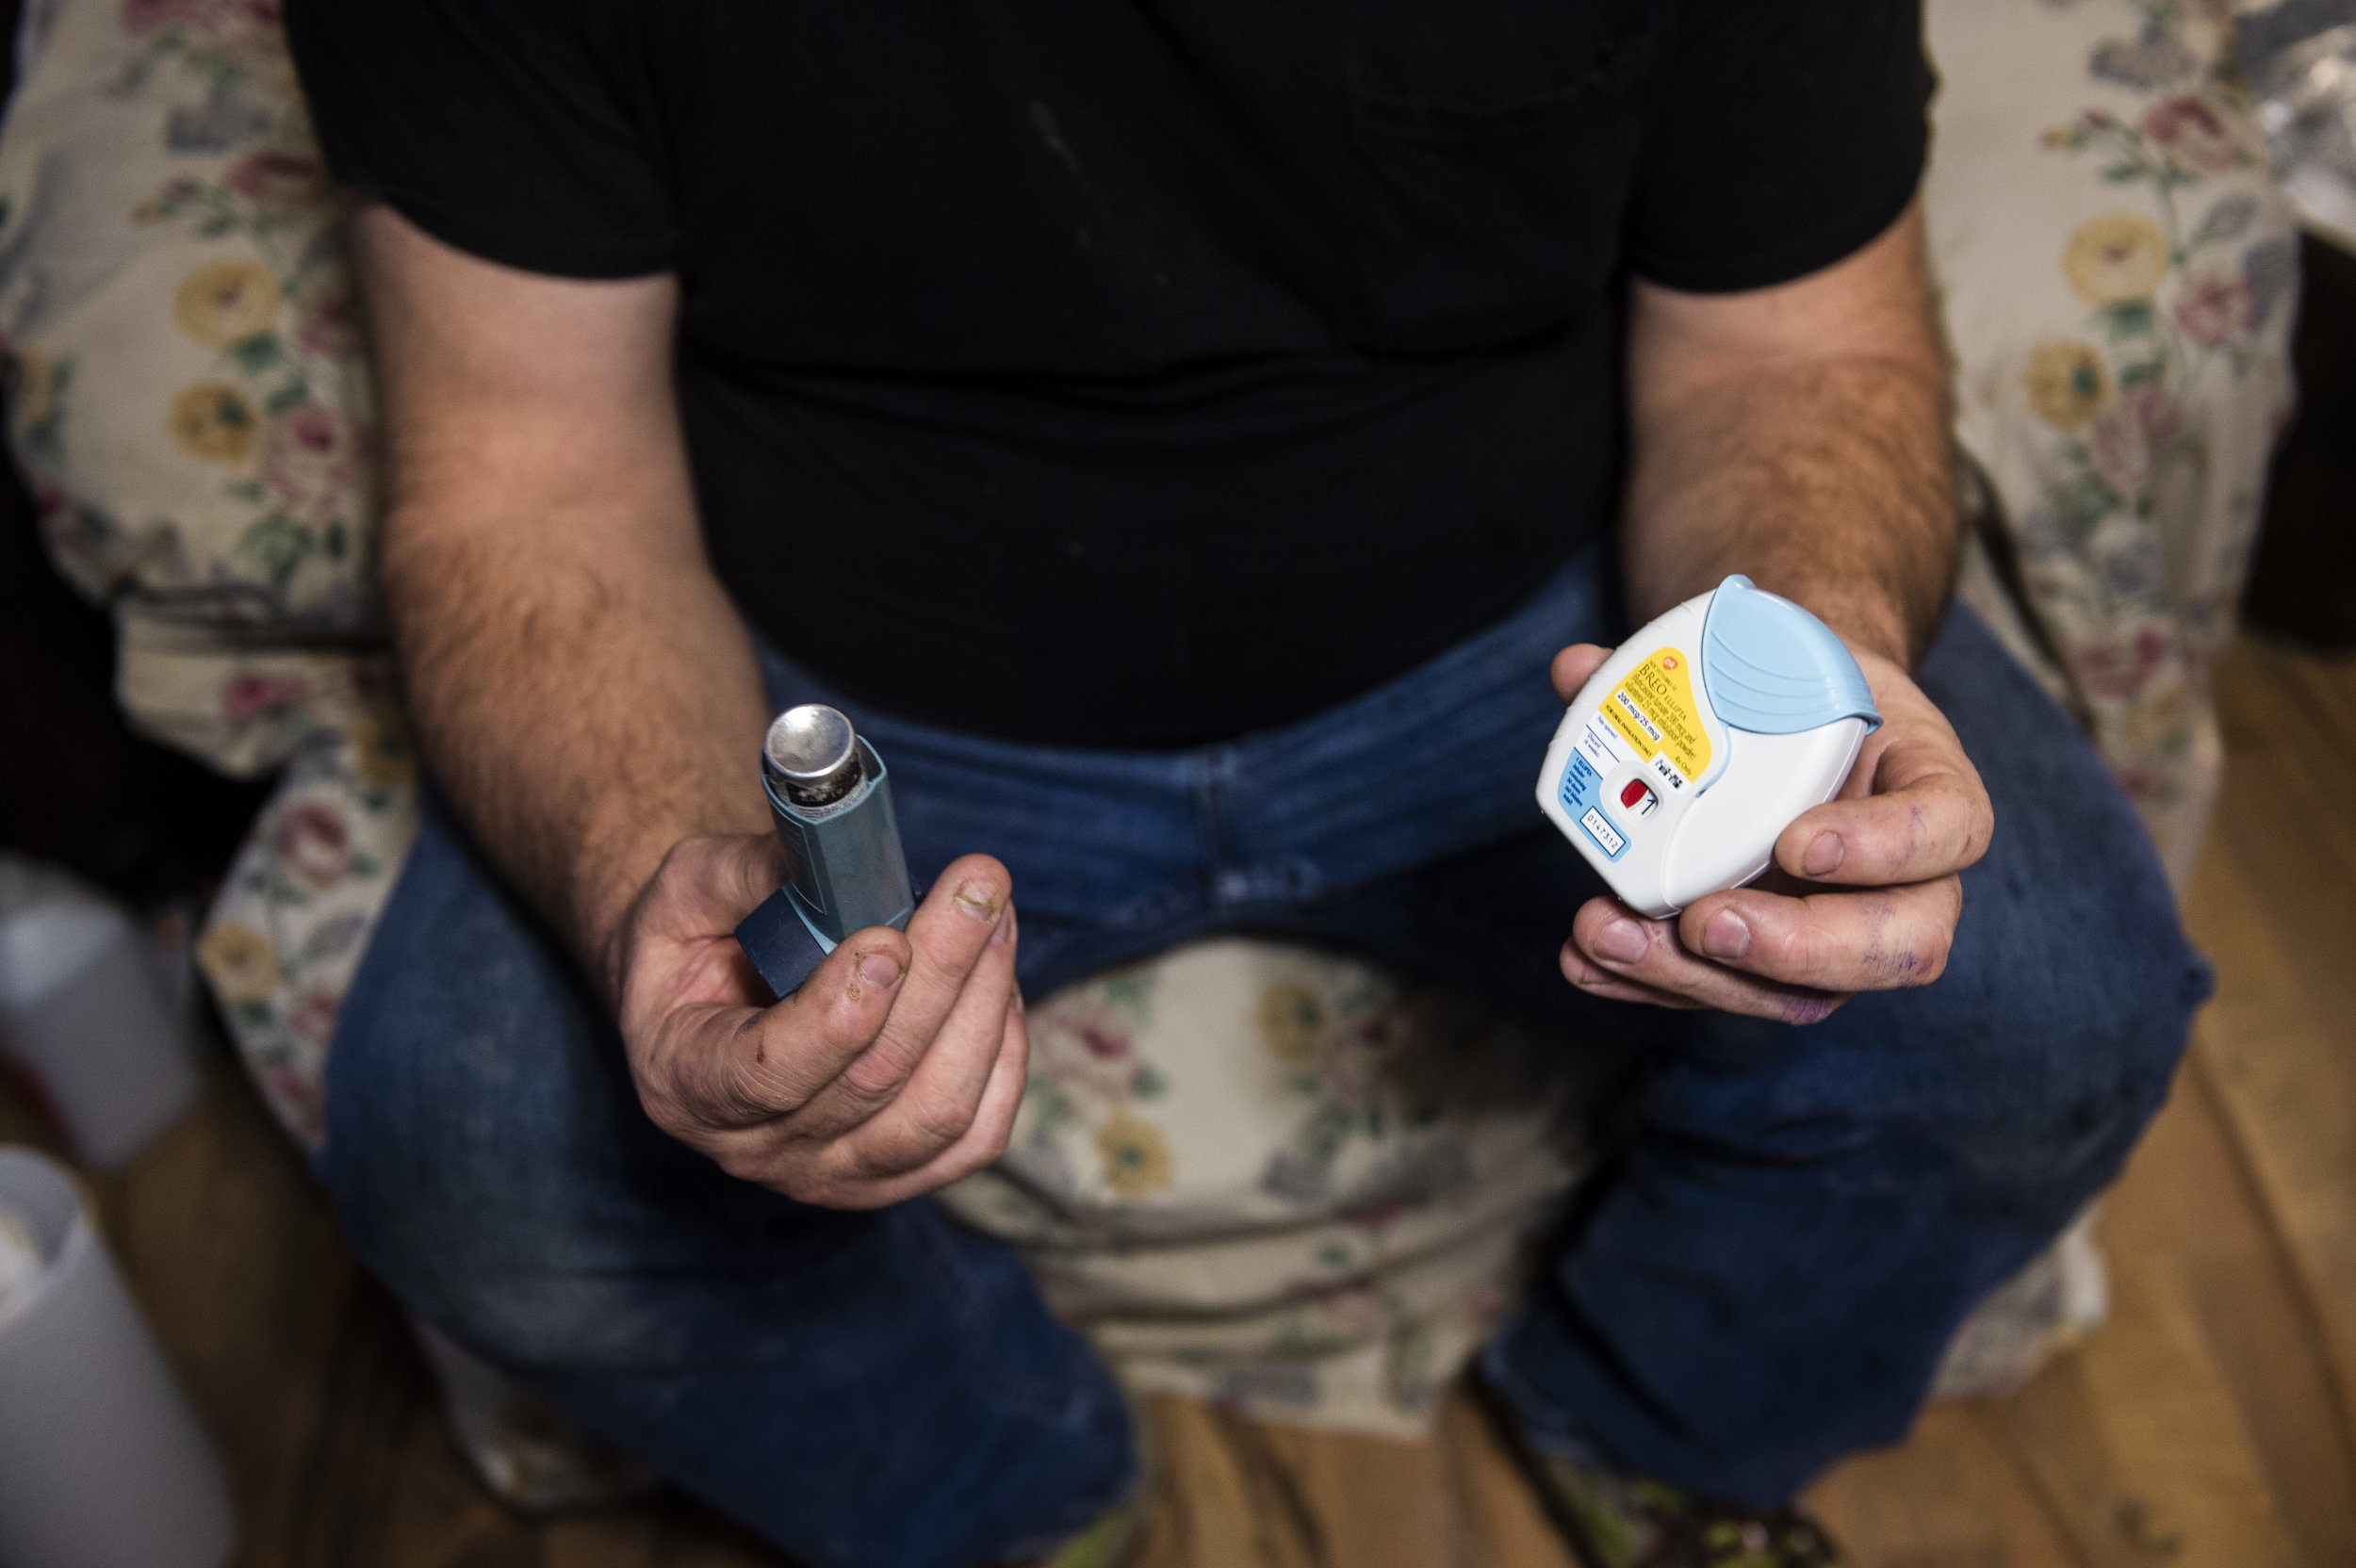 Harold Dotson shows the two inhalers he uses when he has breathing episodes due to his Black Lung Disease on Thursday, January 17 in Paw Paw, Kentucky.